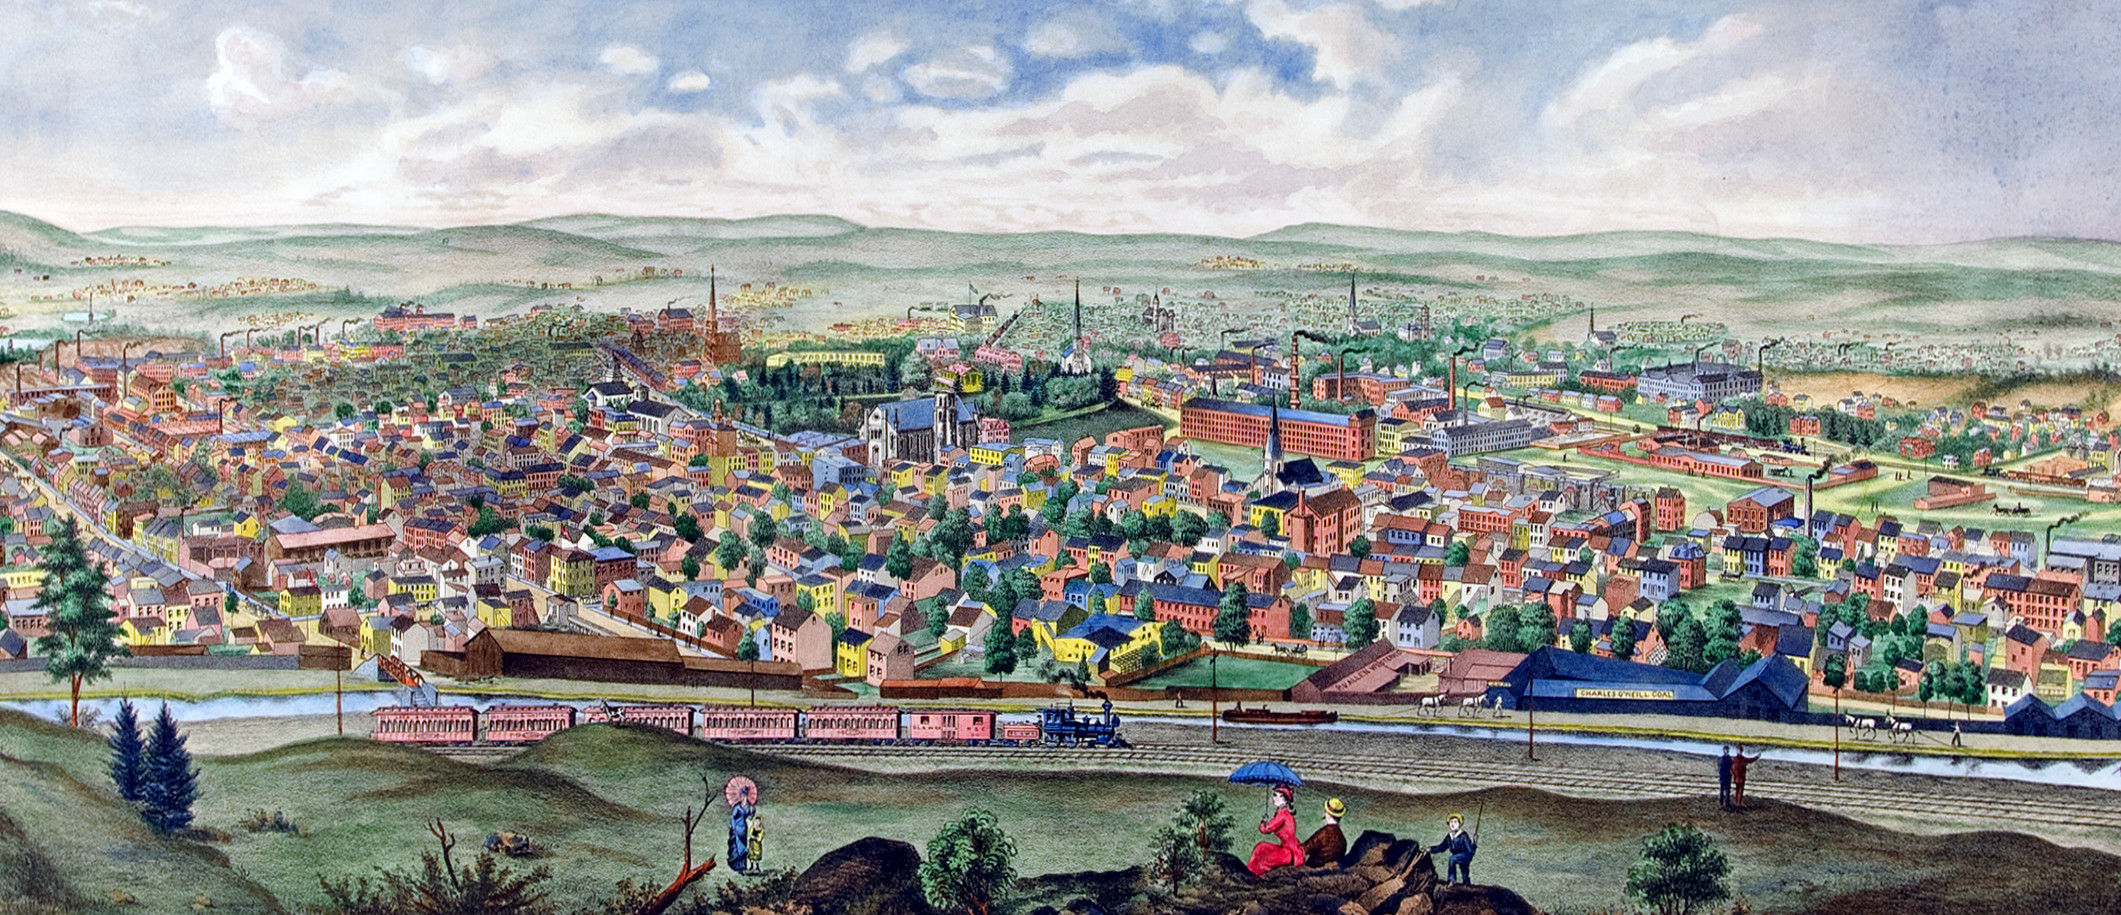 Paterson New Jersey In 1880 Restored Image Shows